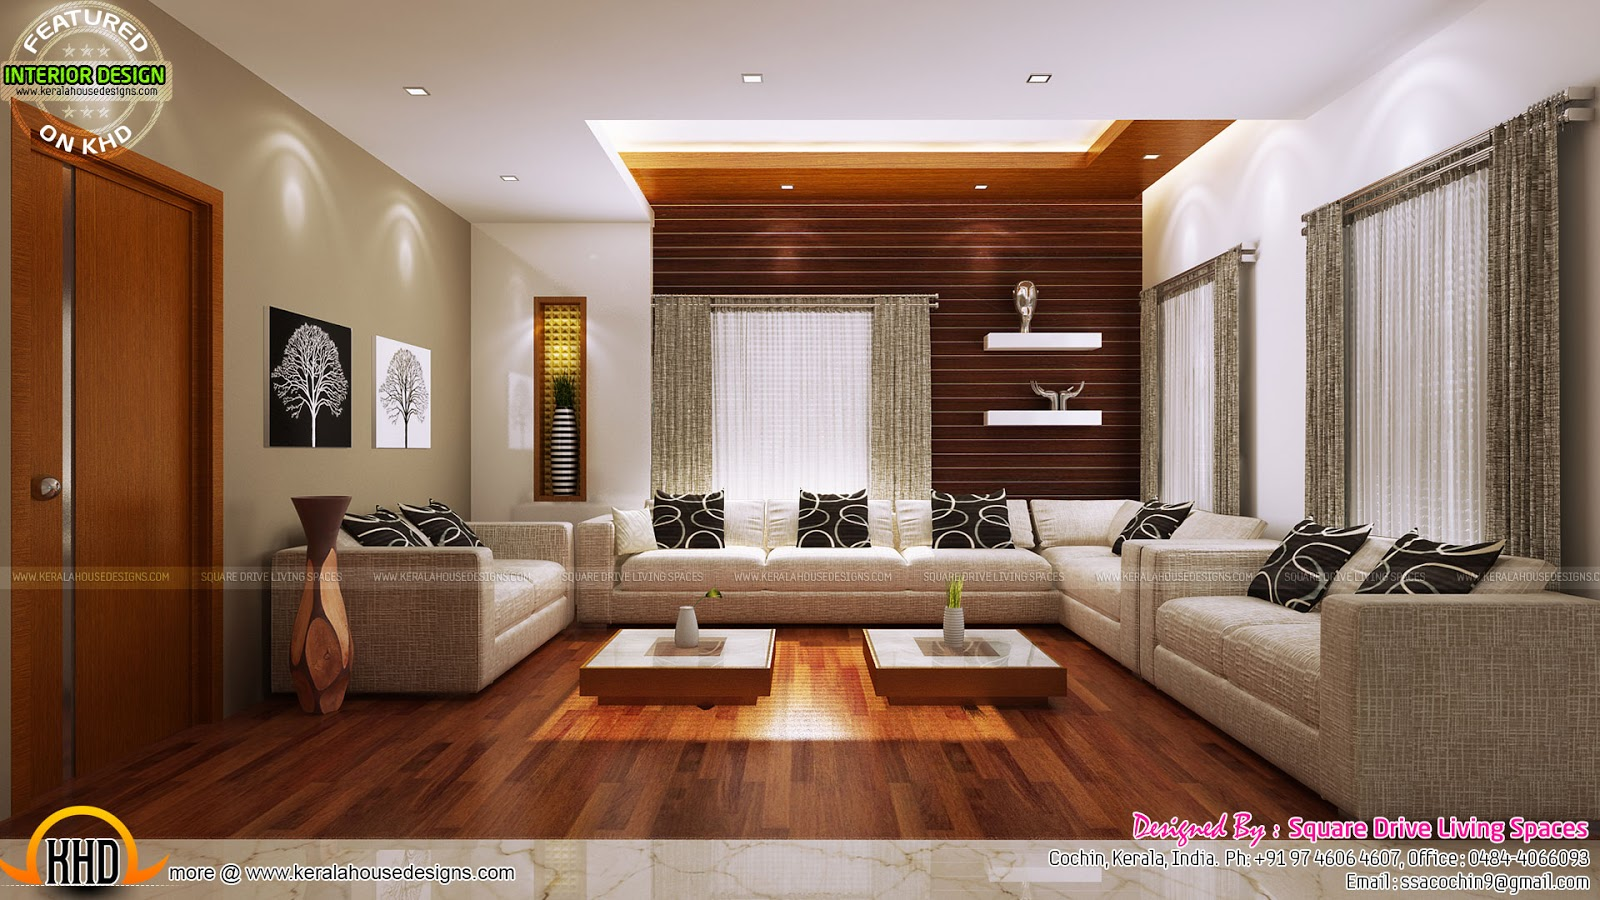 Excellent kerala interior design kerala home design and Home interior ideas